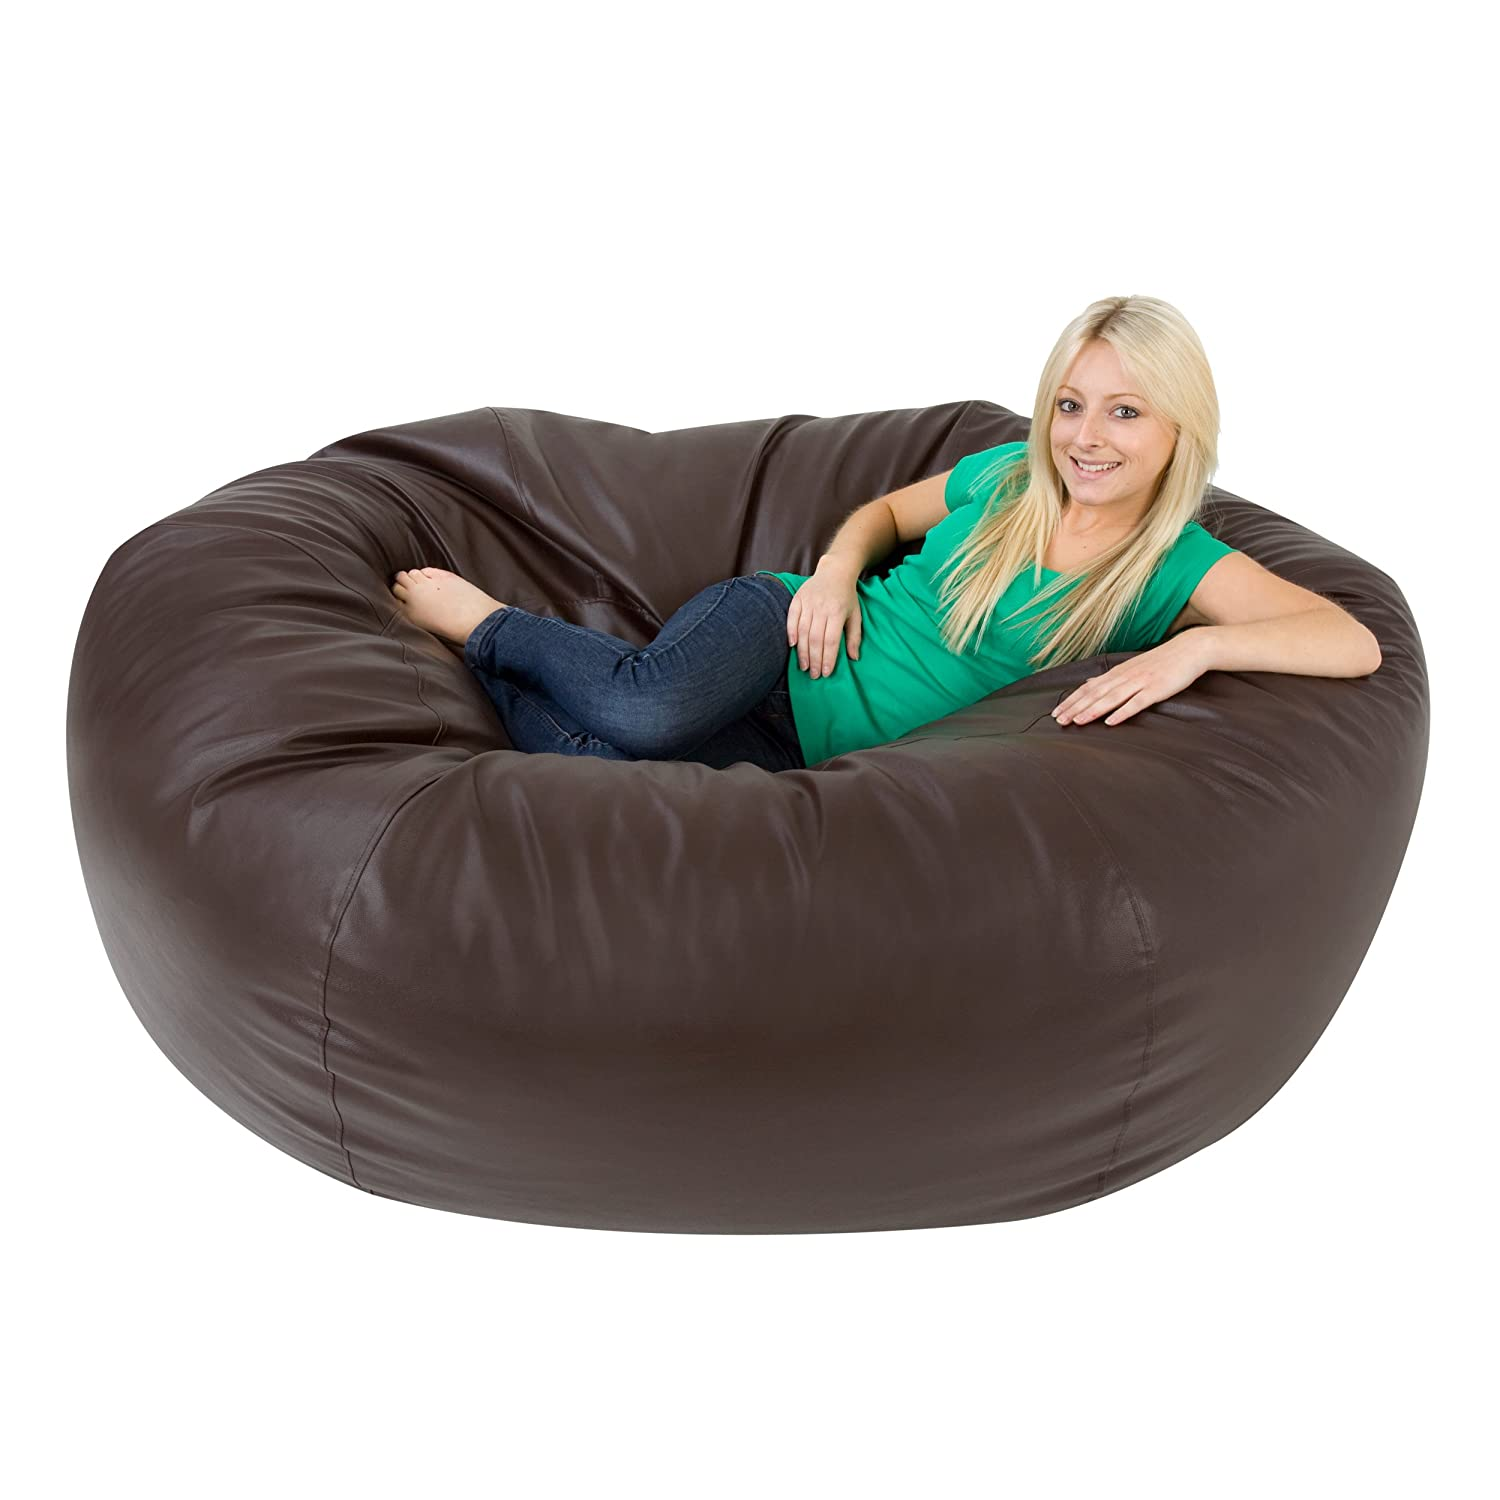 XXXL Bean Bag MONSTER Double